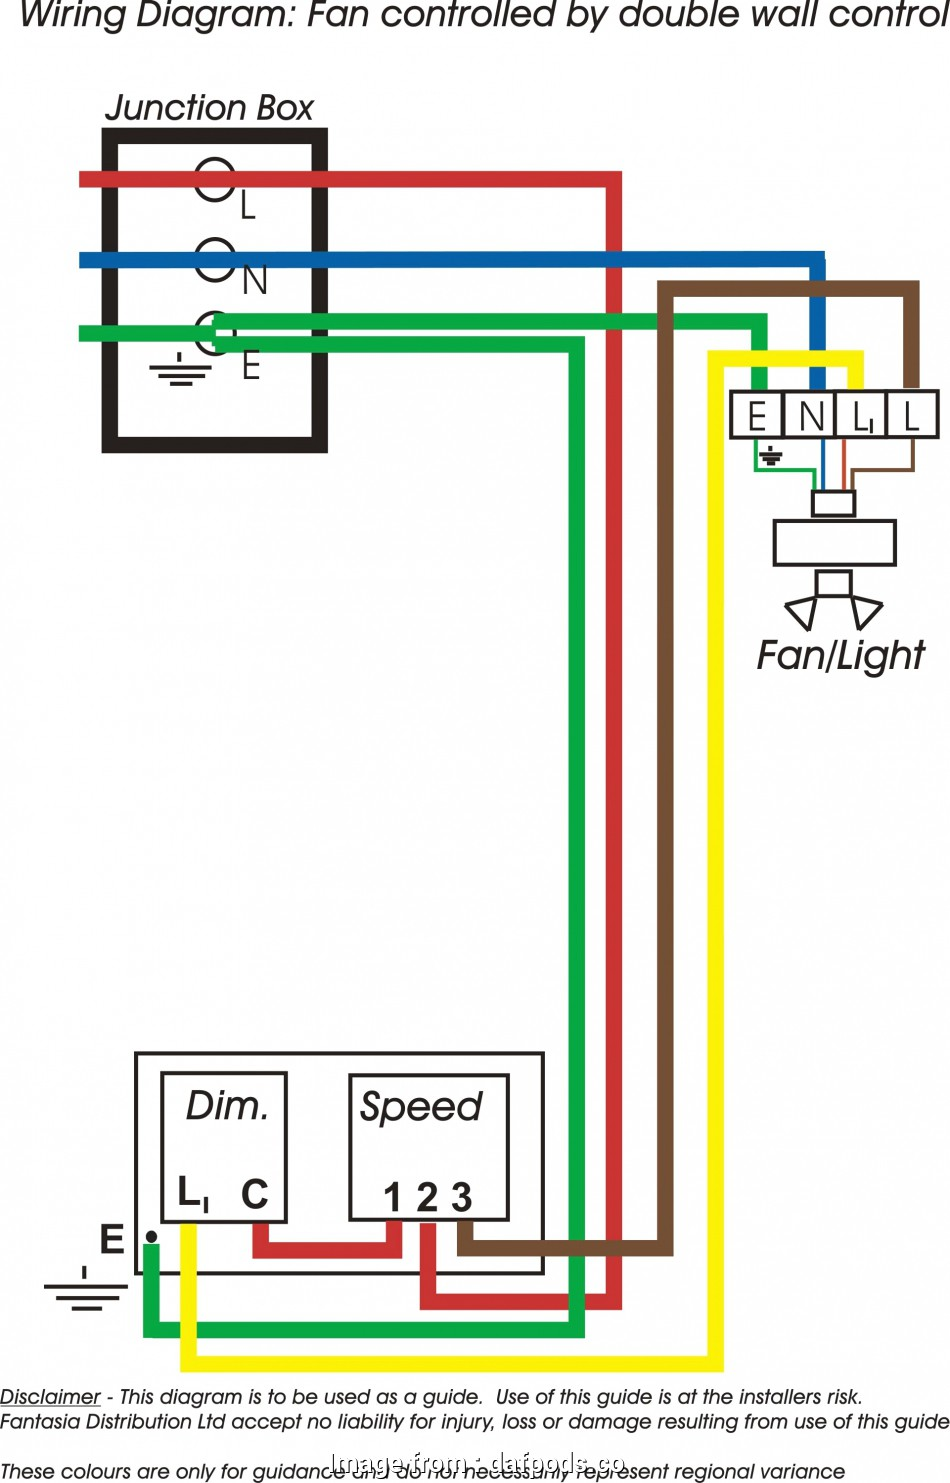 For Bathroom Ceiling Heater Wiring Diagram - seniorsclub.it wires-rice -  wires-rice.seniorsclub.it | Bathroom Overhead Light And Fan Wiring Diagram |  | wires-rice.seniorsclub.it